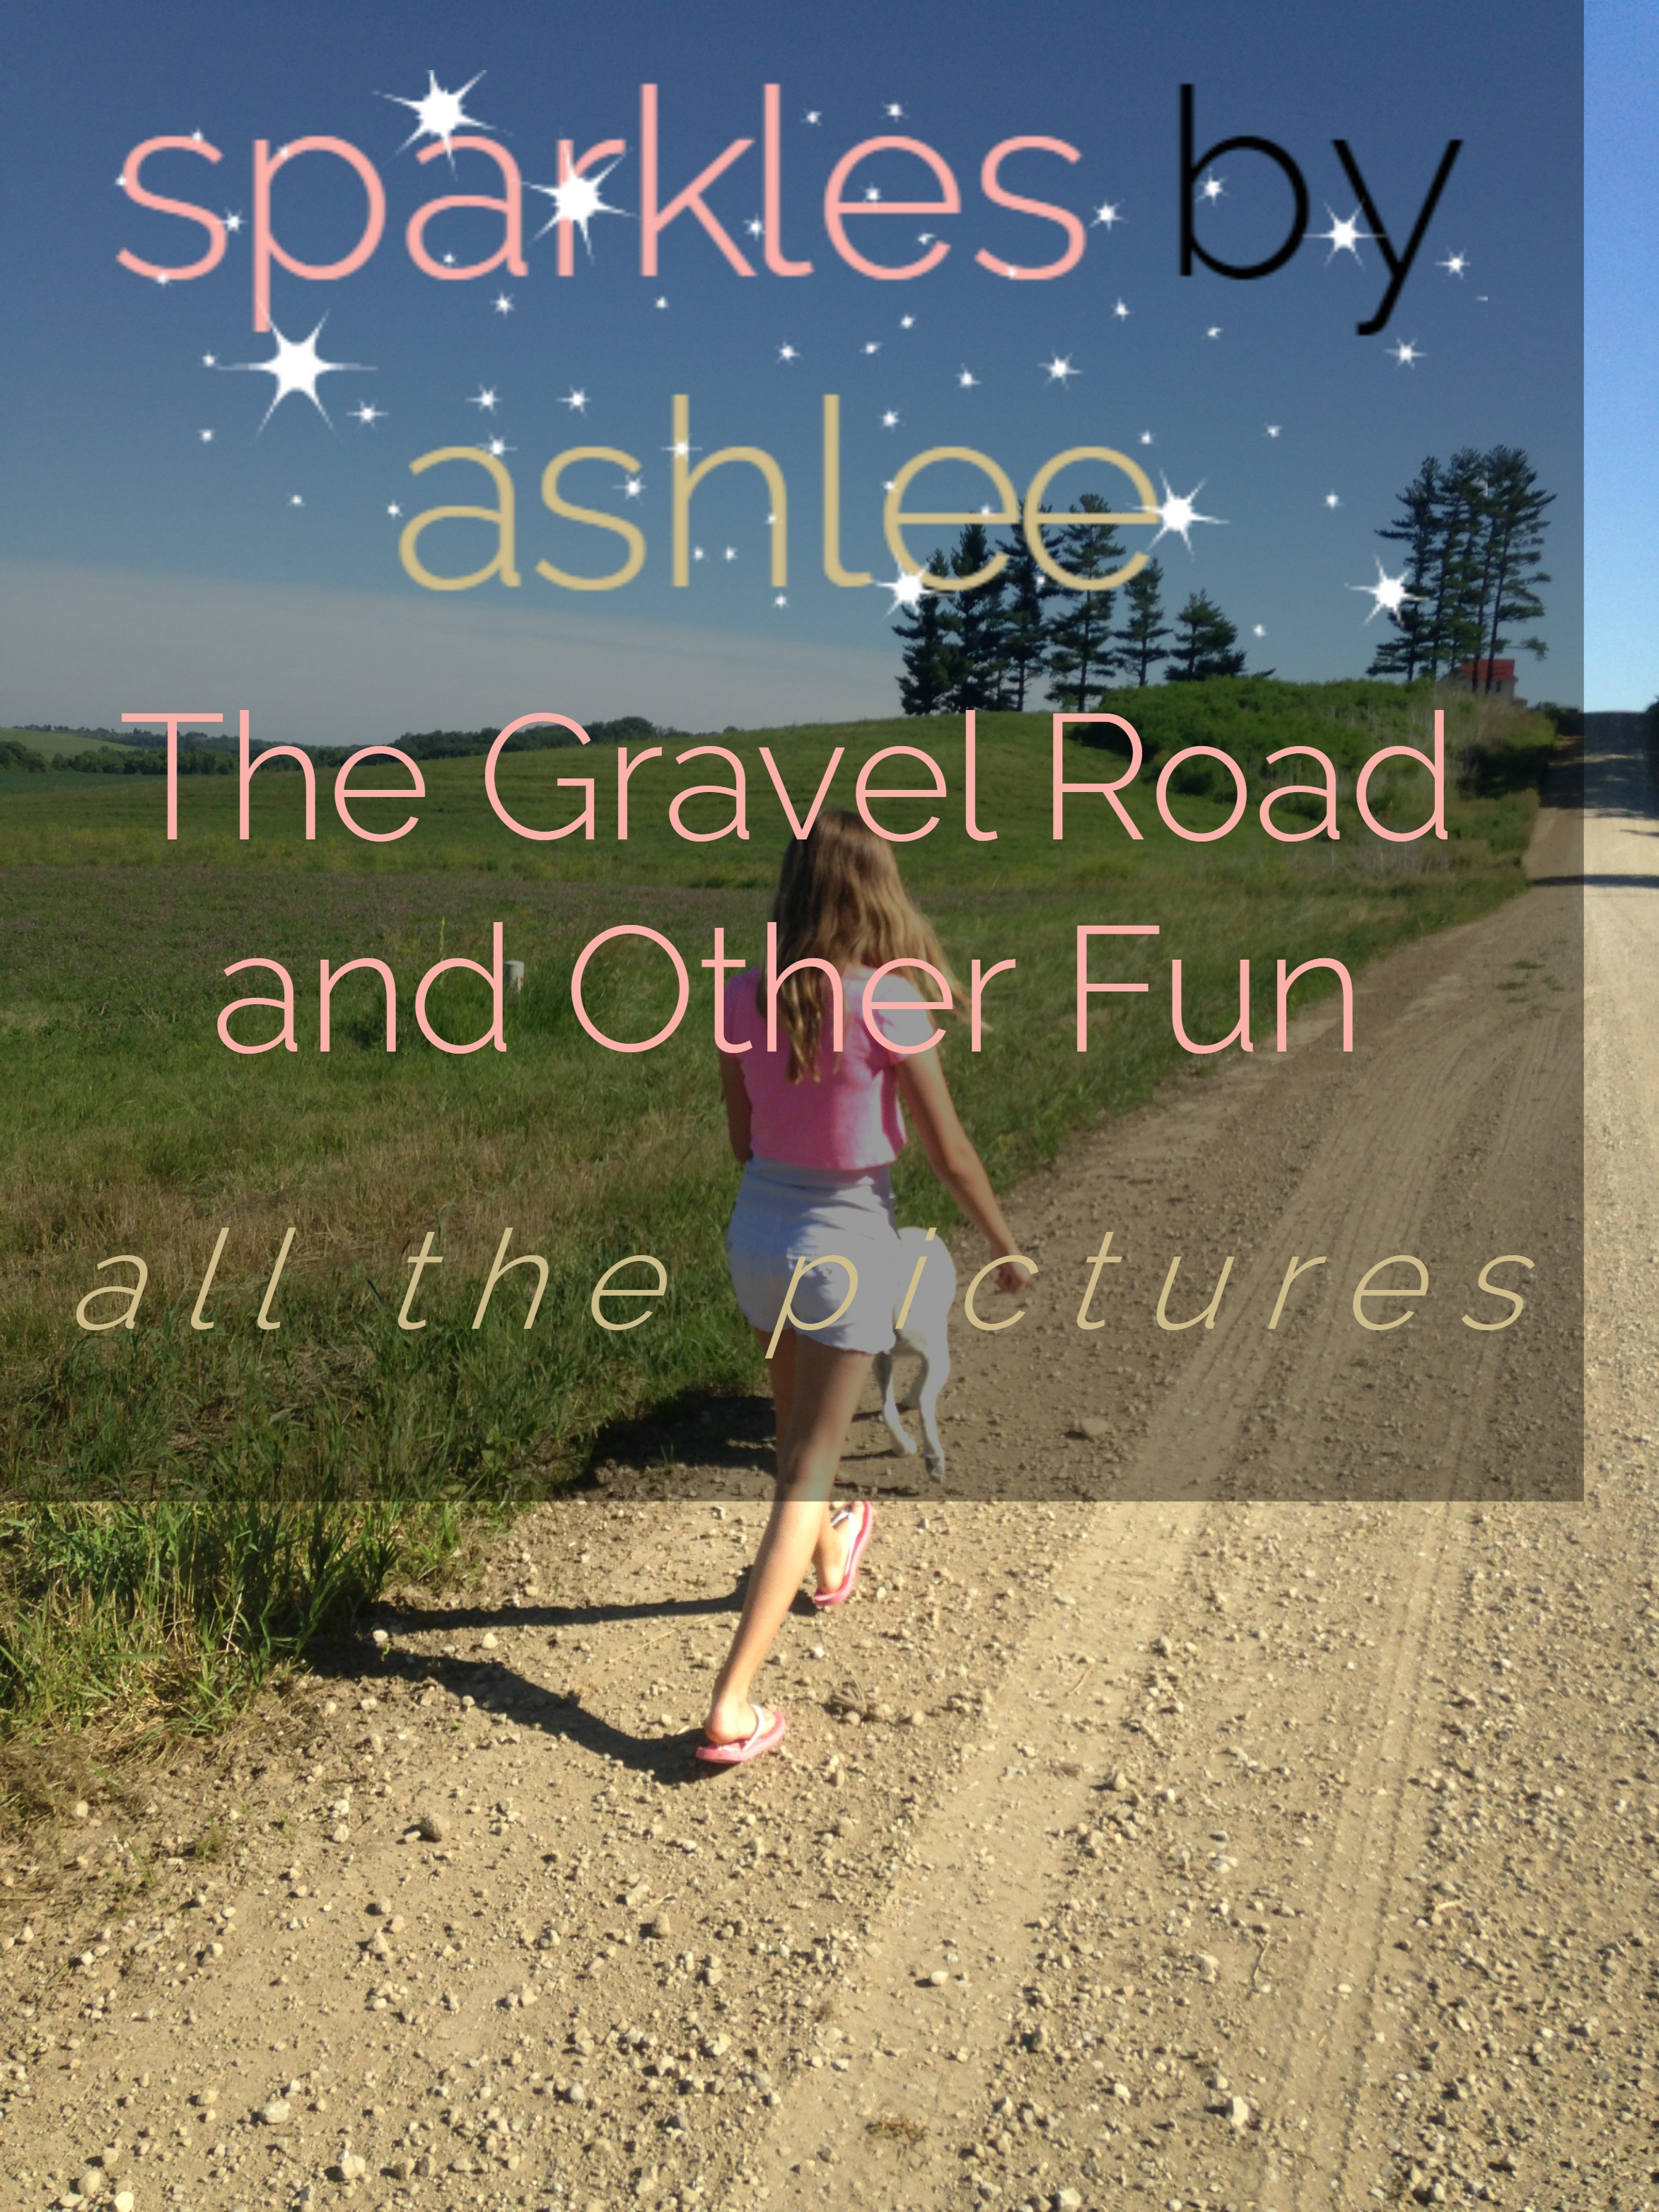 The-Gravel-Road-and-Other-Fun-Sparkles-by-Ashlee.jpg